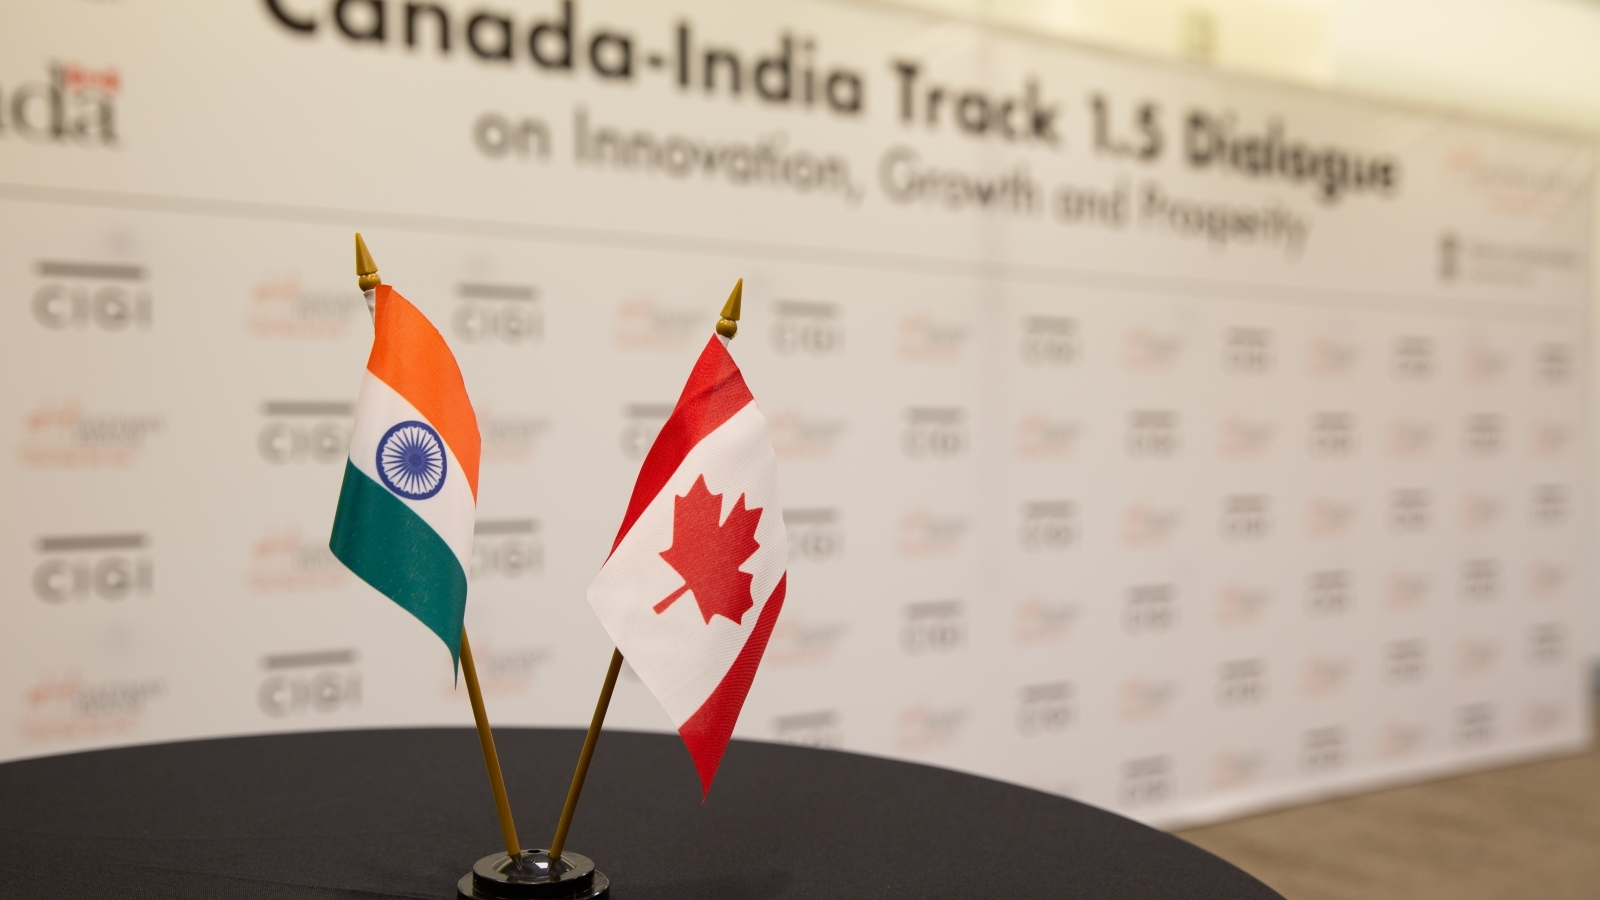 VIDEO: Canada-India Track 1 5 Dialogue on Innovation, Growth and